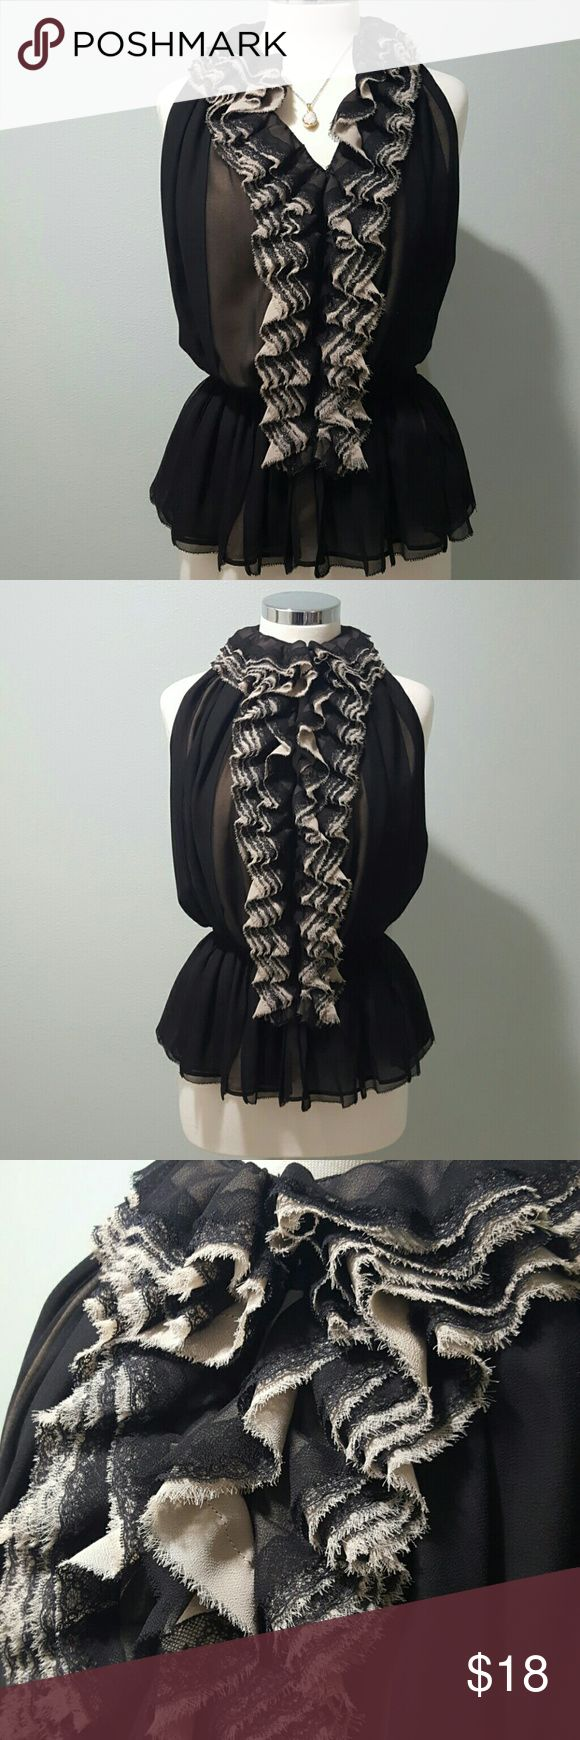 Fun and Flirty Niemen Marcus Top Ruffled chest with layers of black and cream. The neck can be left opened or buttoned up. Perfect condition. I imagine this top would be perfect with fitted jeans and heels. Smoke free home. Niemen marcus  Tops